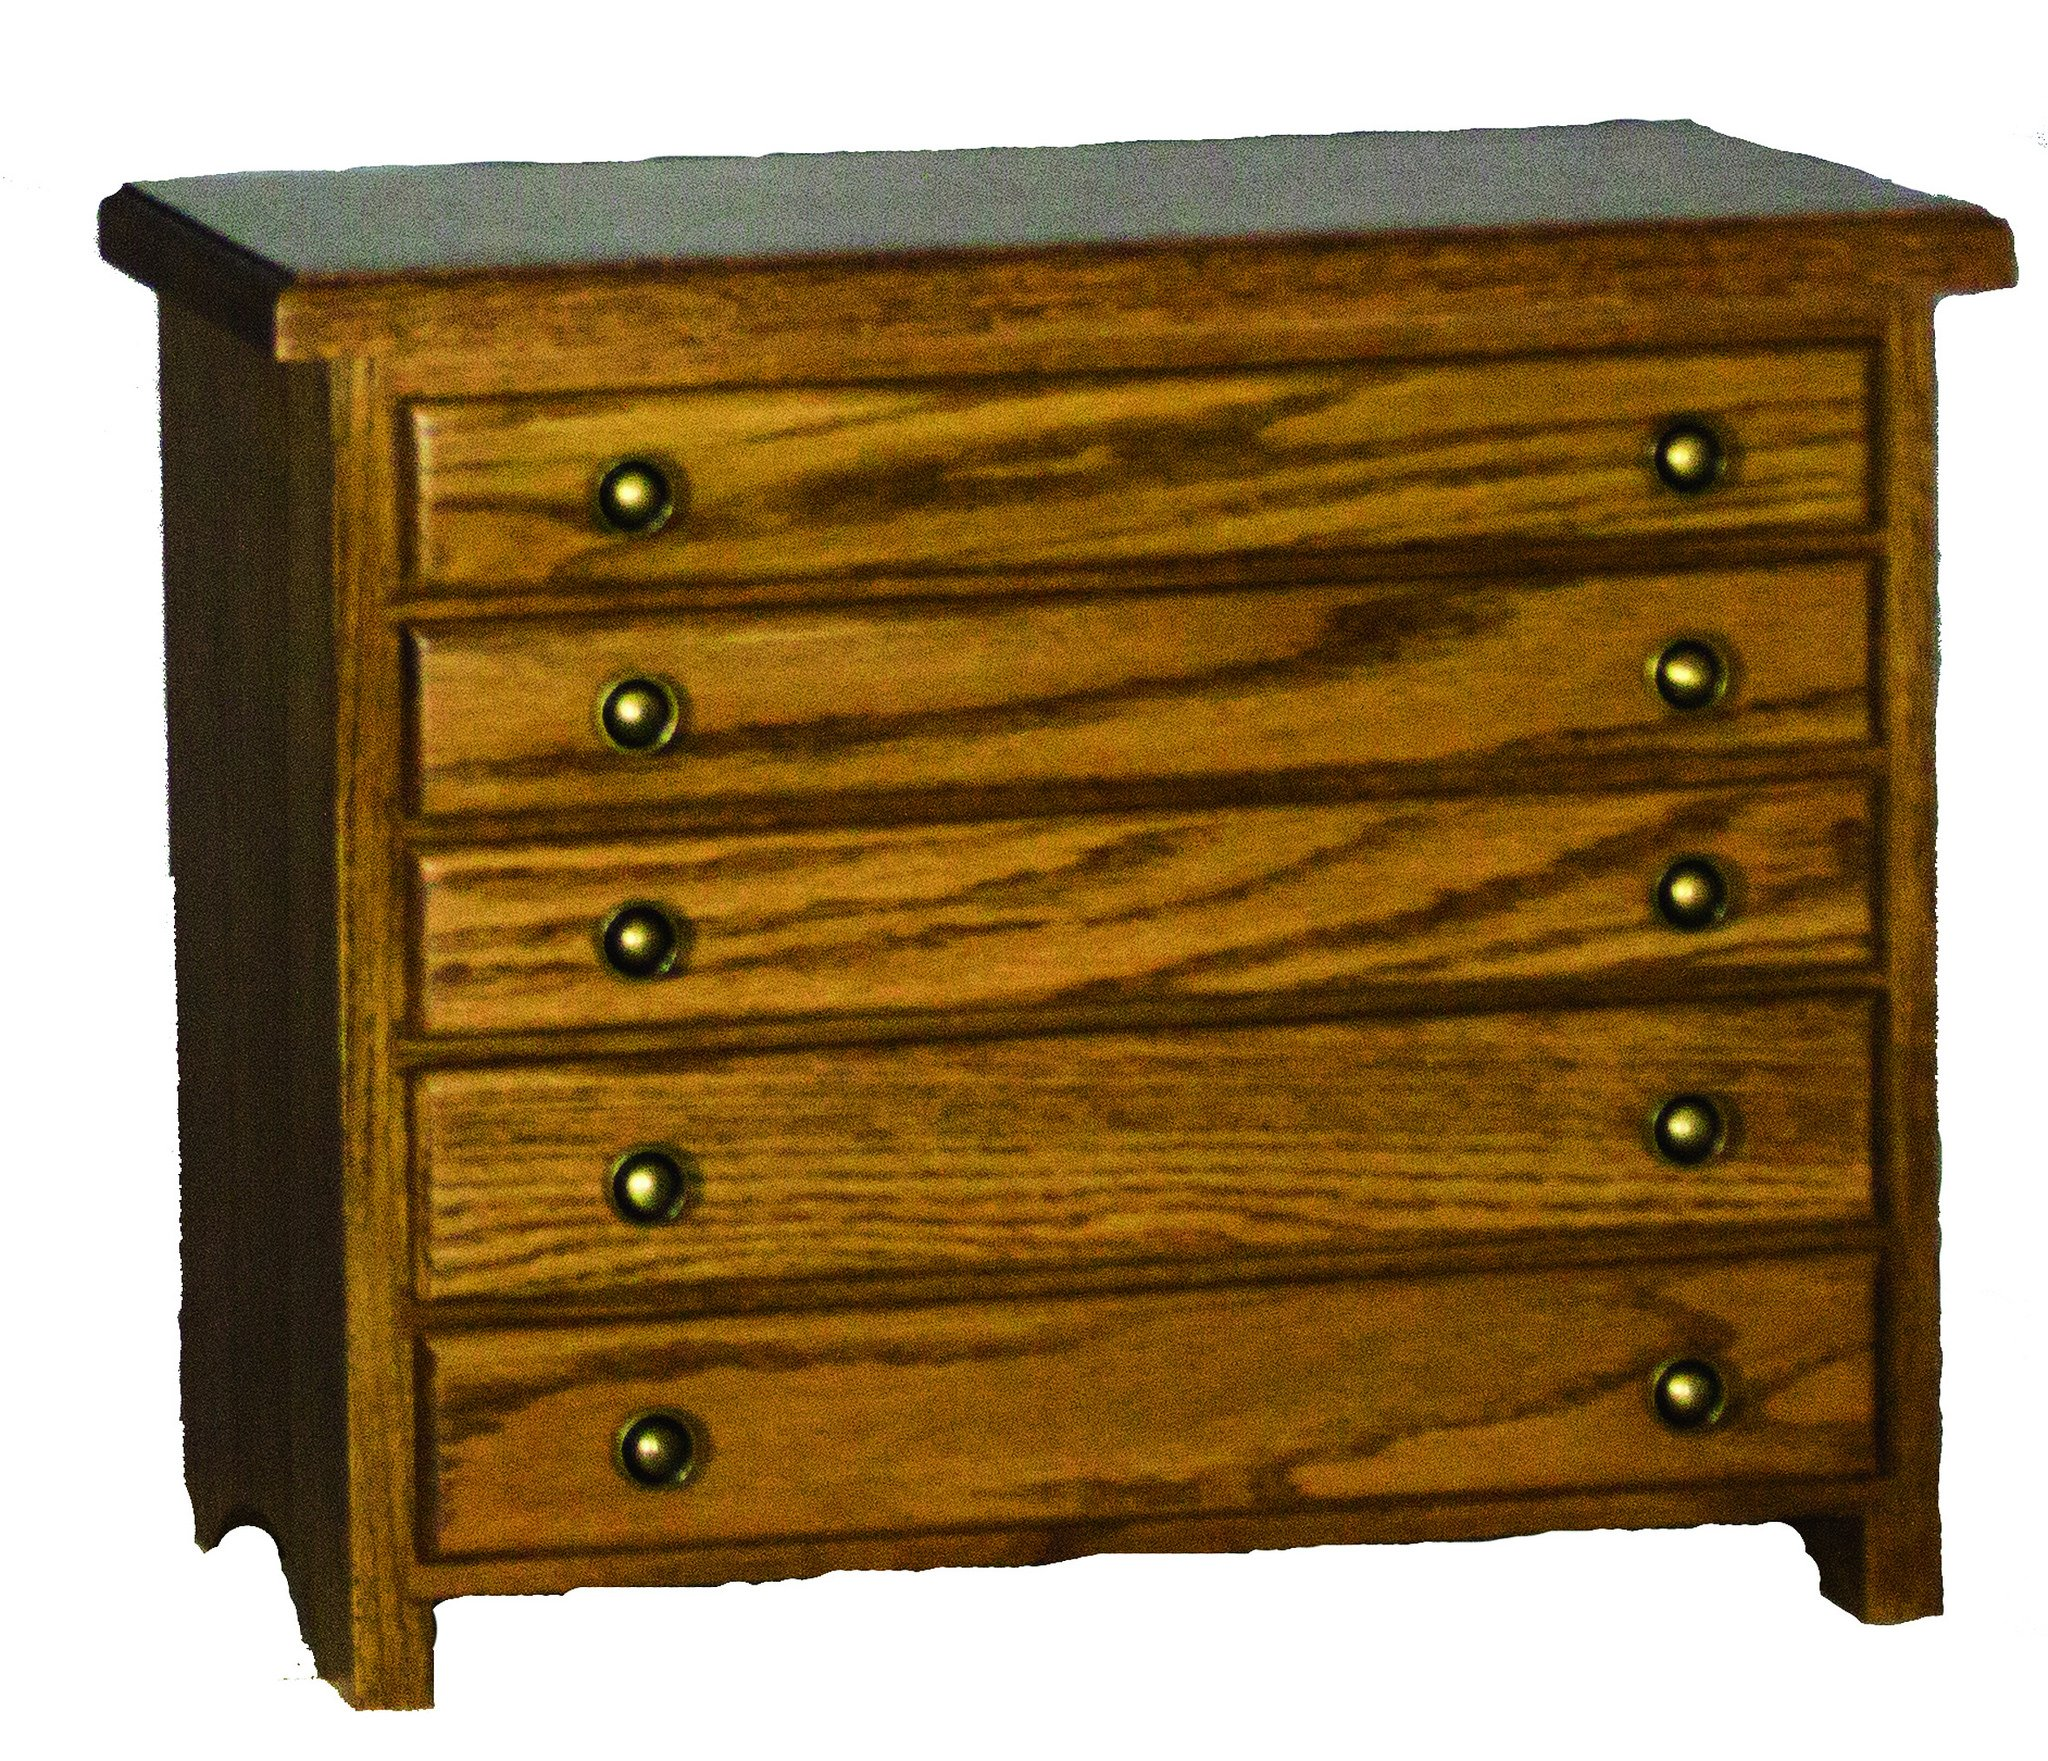 Oak 5 Drawer Jewelry Chest - Amish Made in USA by Furniture Barn USA